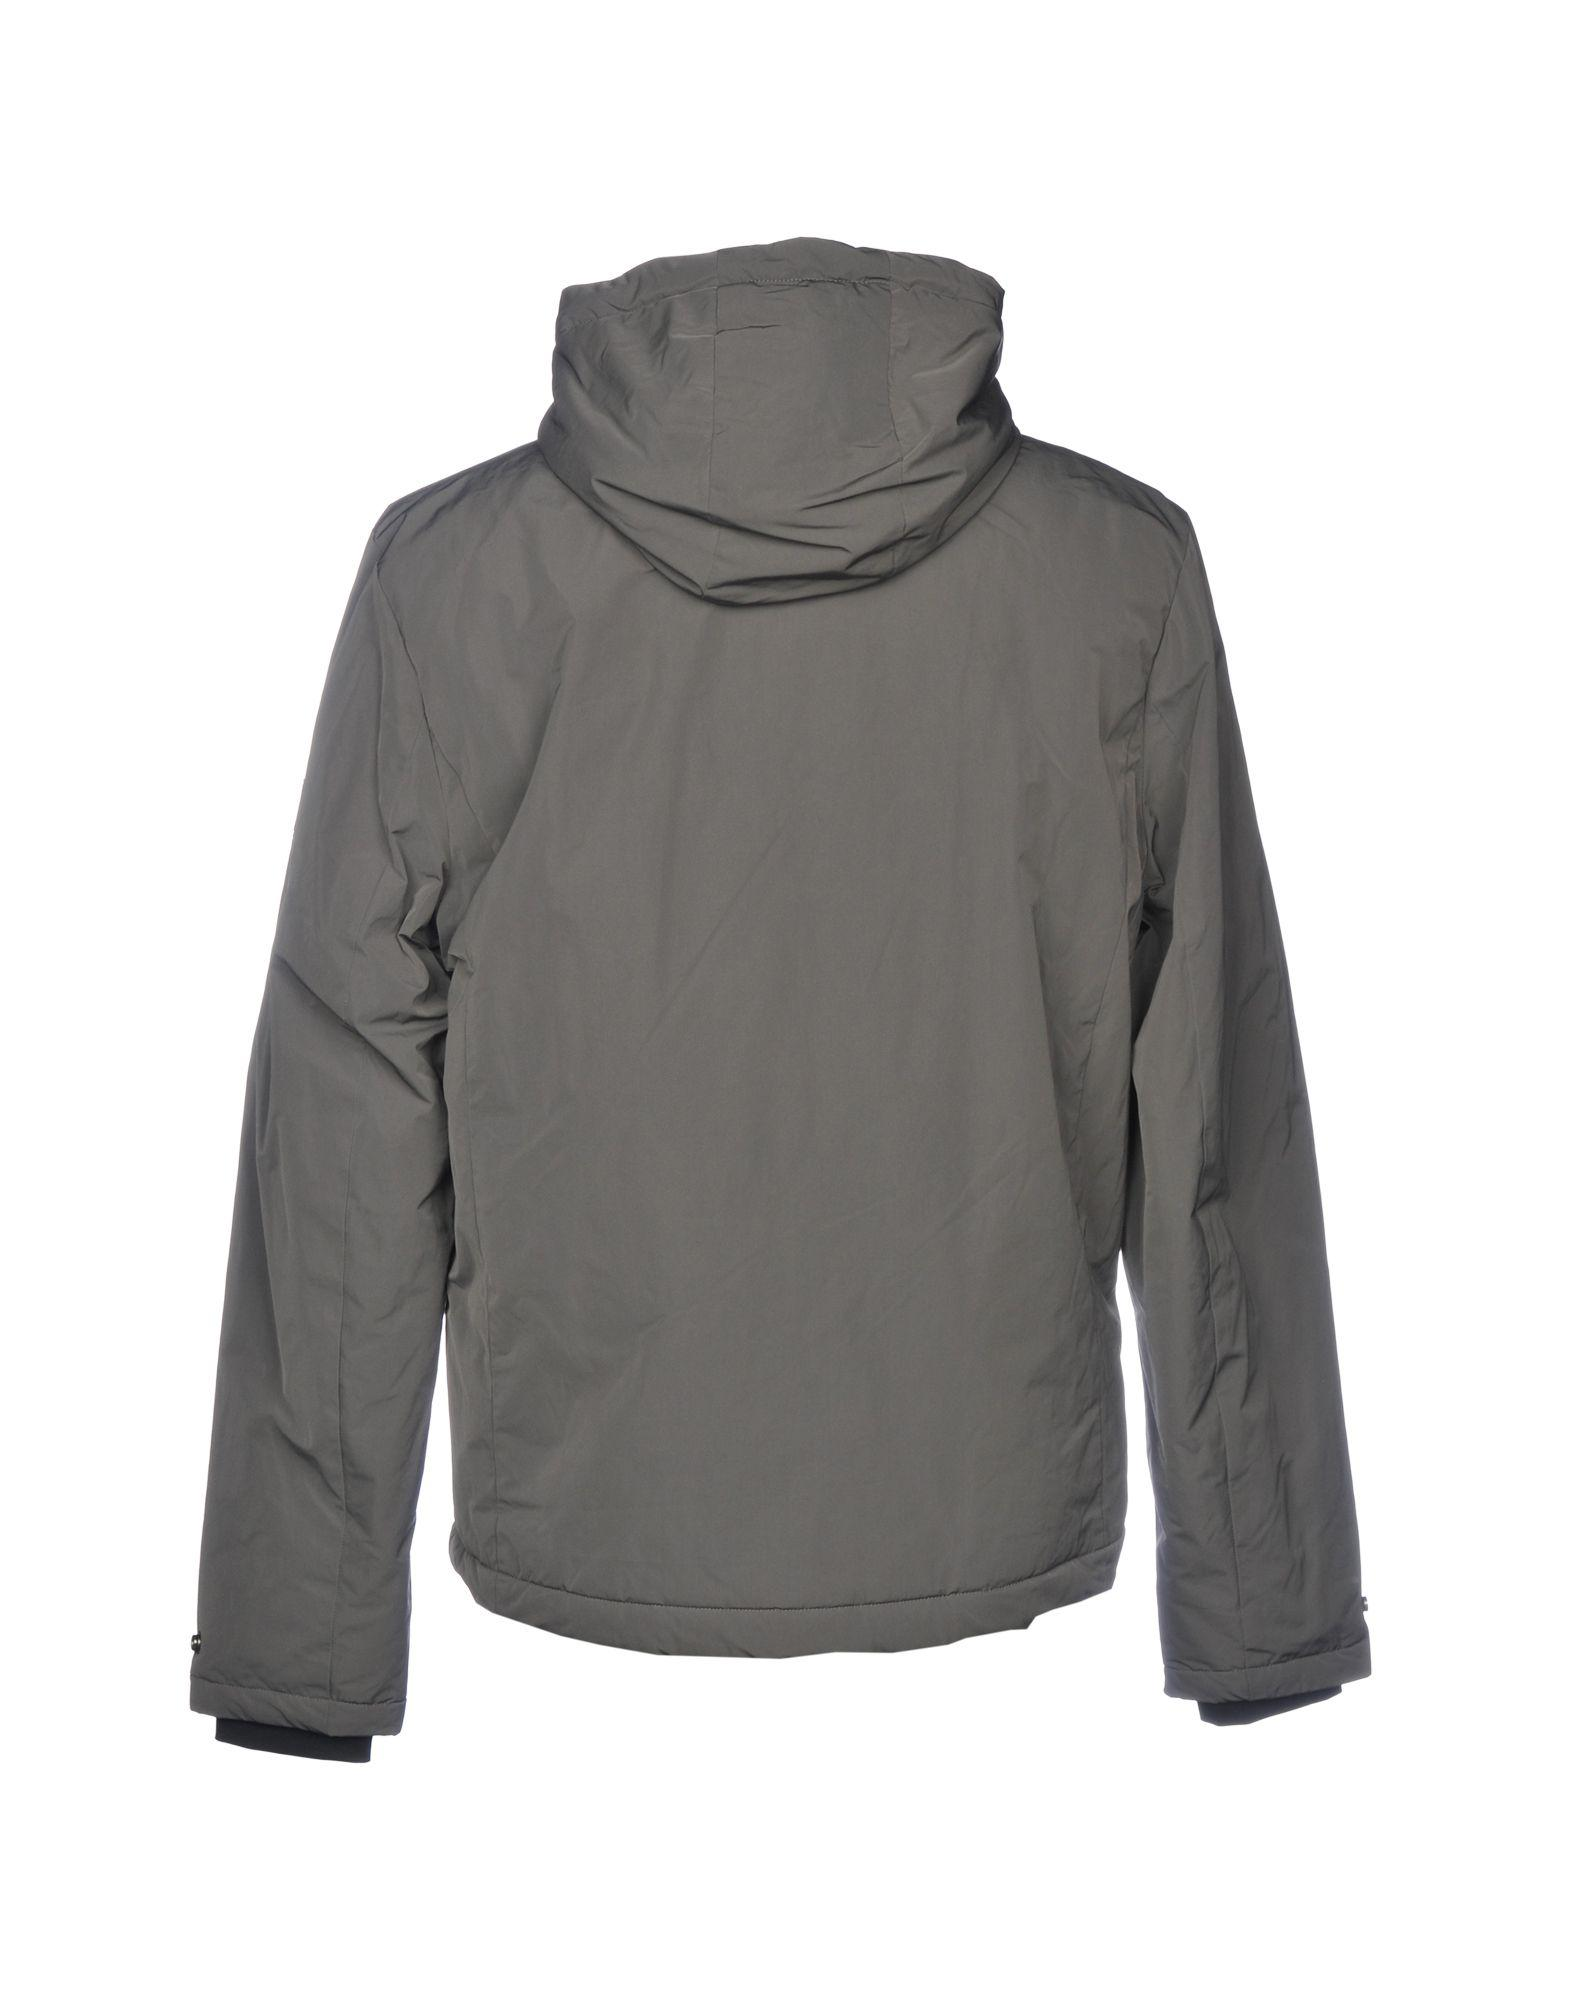 Refrigue Synthetic Jacket in Lead (Grey) for Men